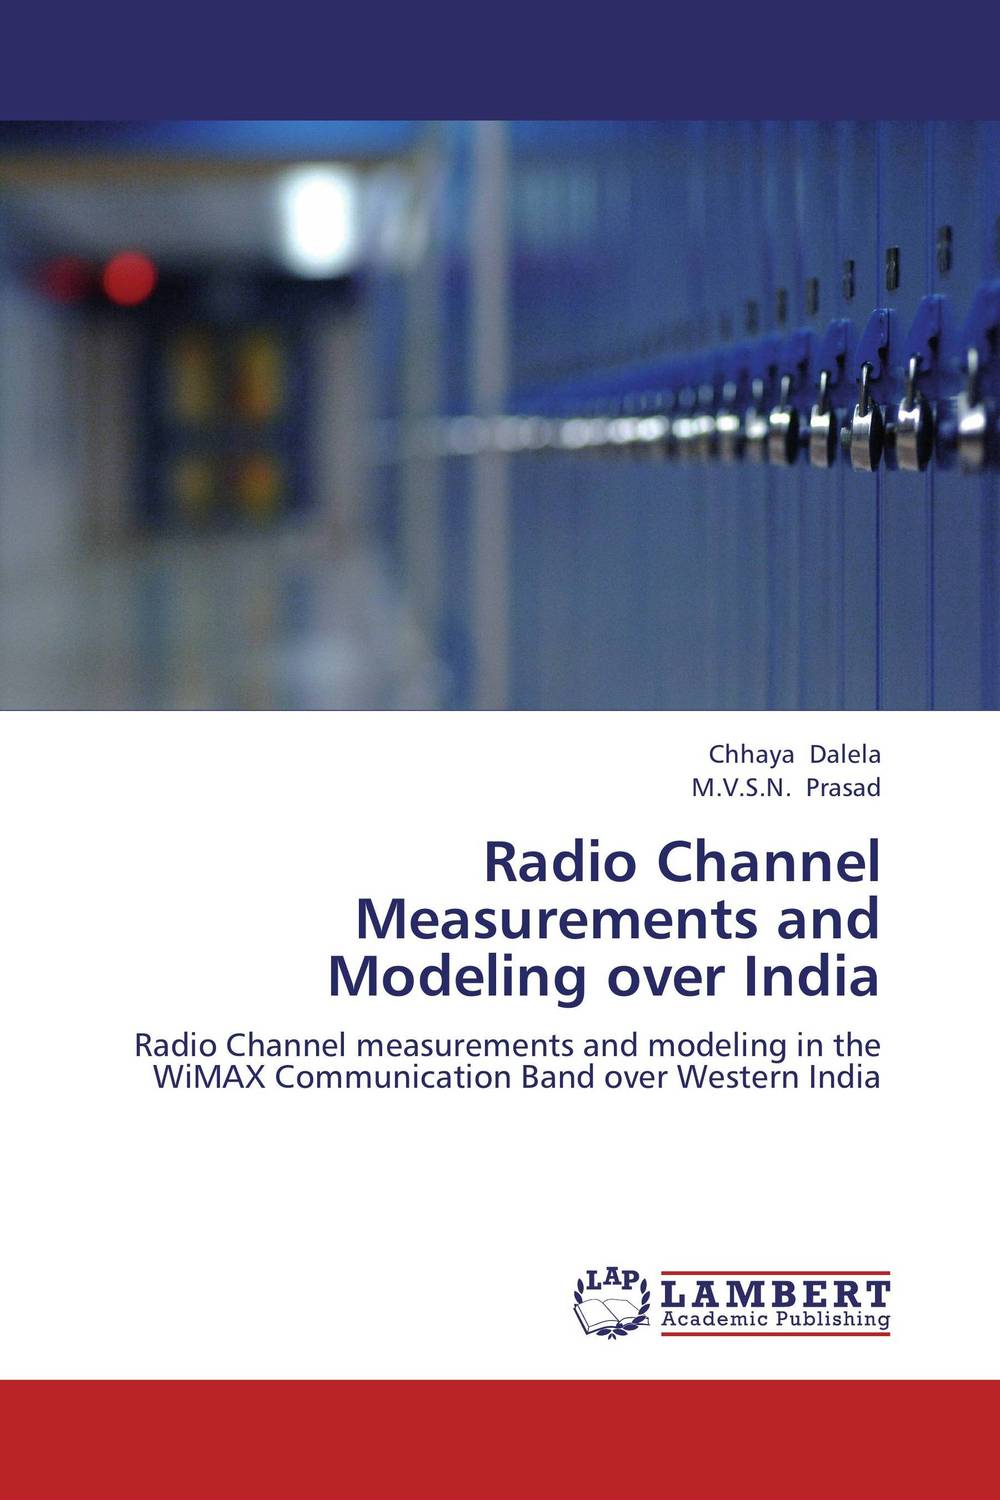 Radio Channel Measurements and Modeling over India multimode fibre broadband access and self referencing sensors networks